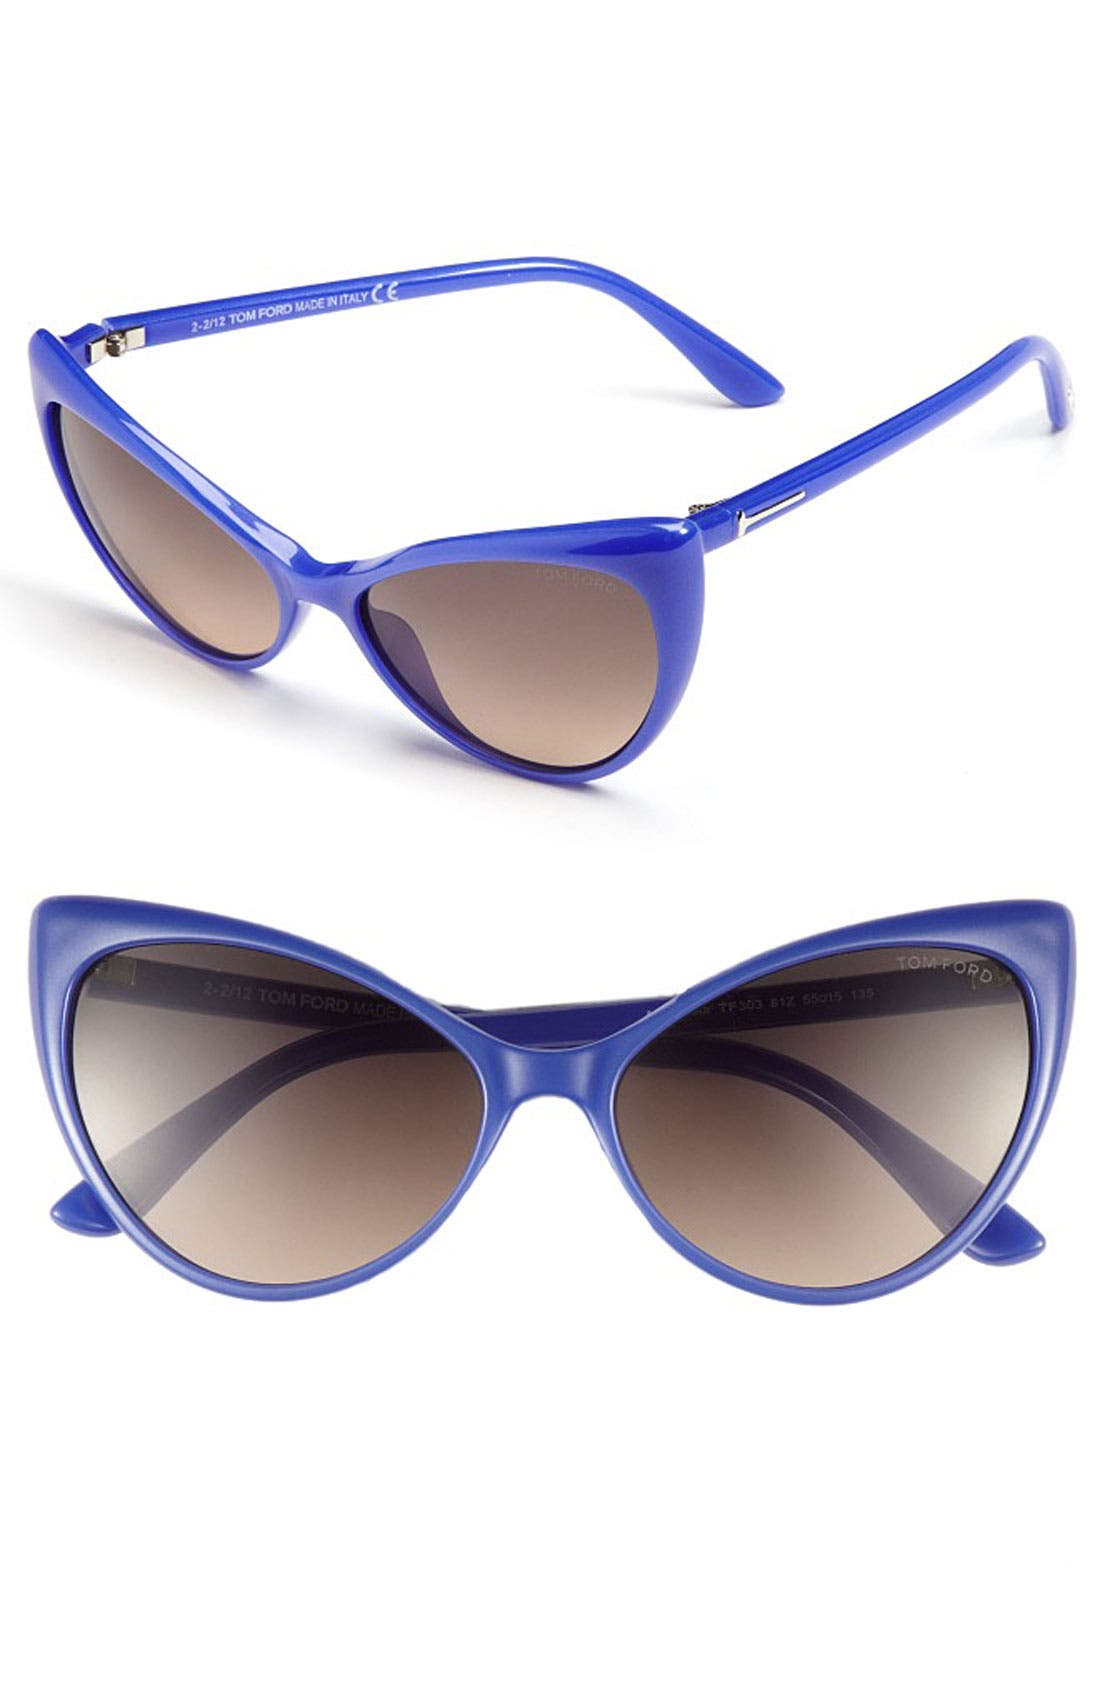 Alternate Image 1 Selected - Tom Ford 'Anastasia' 55mm Retro Sunglasses